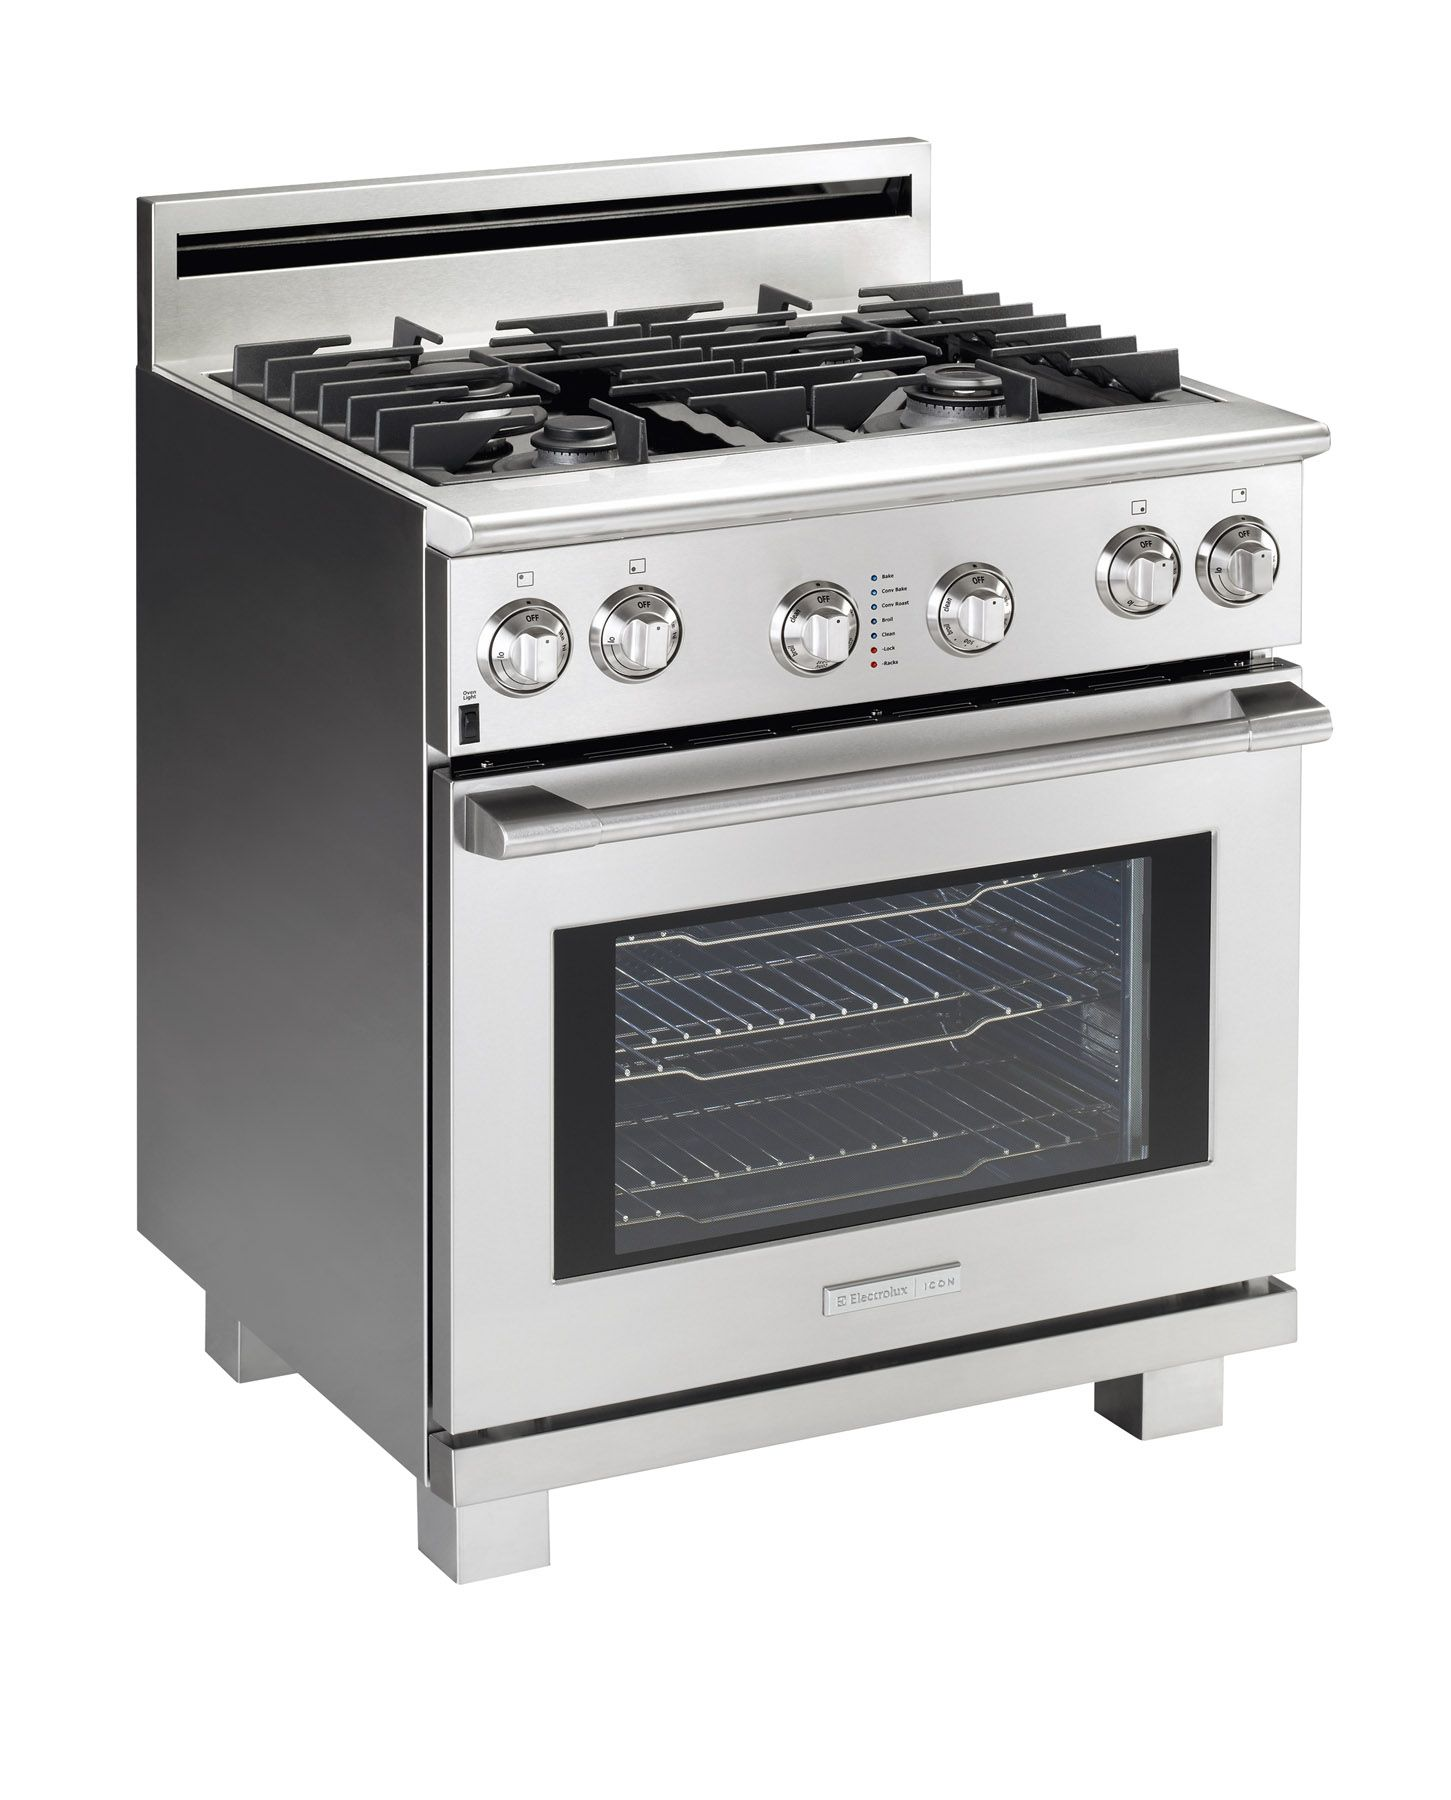 Electrolux ICON 4.2 cu. ft. Freestanding Gas Range - Stainless Steel